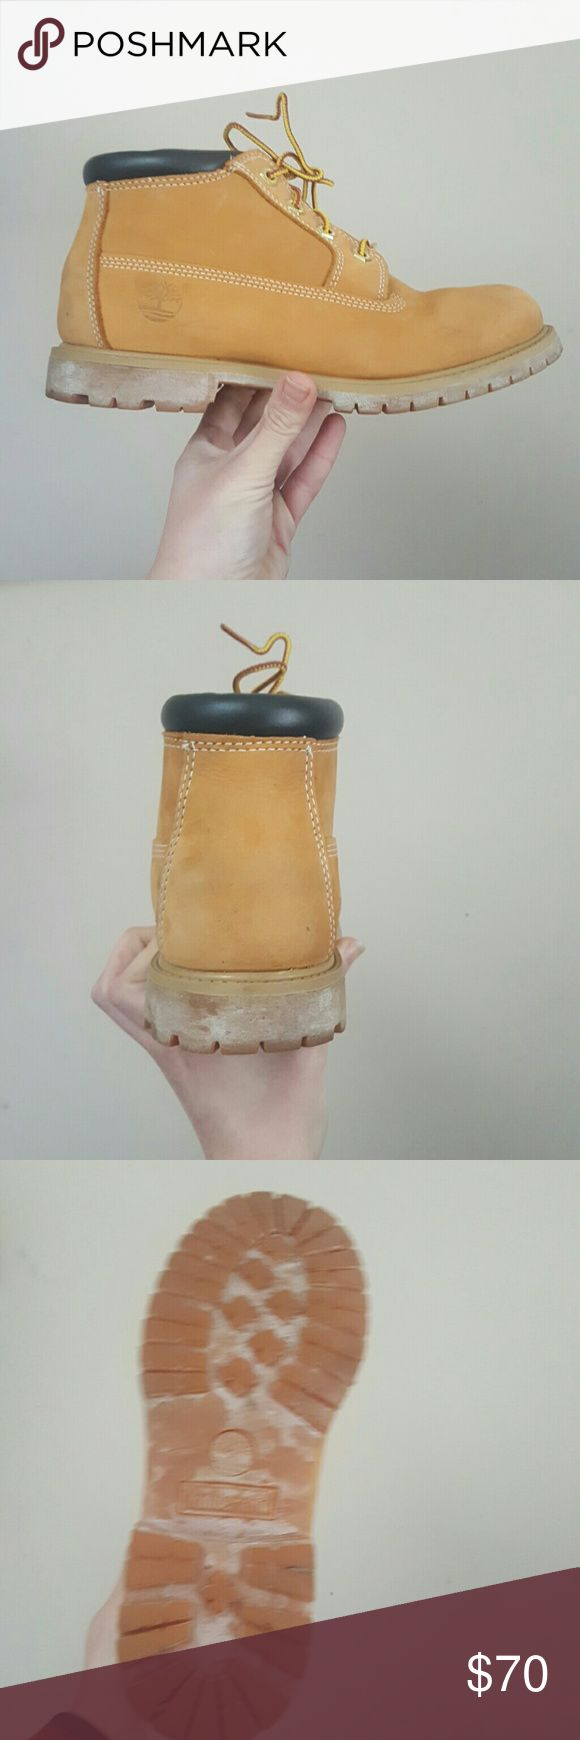 Timberland Nellie Chukka Wheat 8.5 TIMBERLAND 8.5 WORN 5 TIMES GREAT SHAPE Pretty clean Versatile and comfortable Classic and on trend A brand you can count on Timberland Shoes Winter & Rain Boots